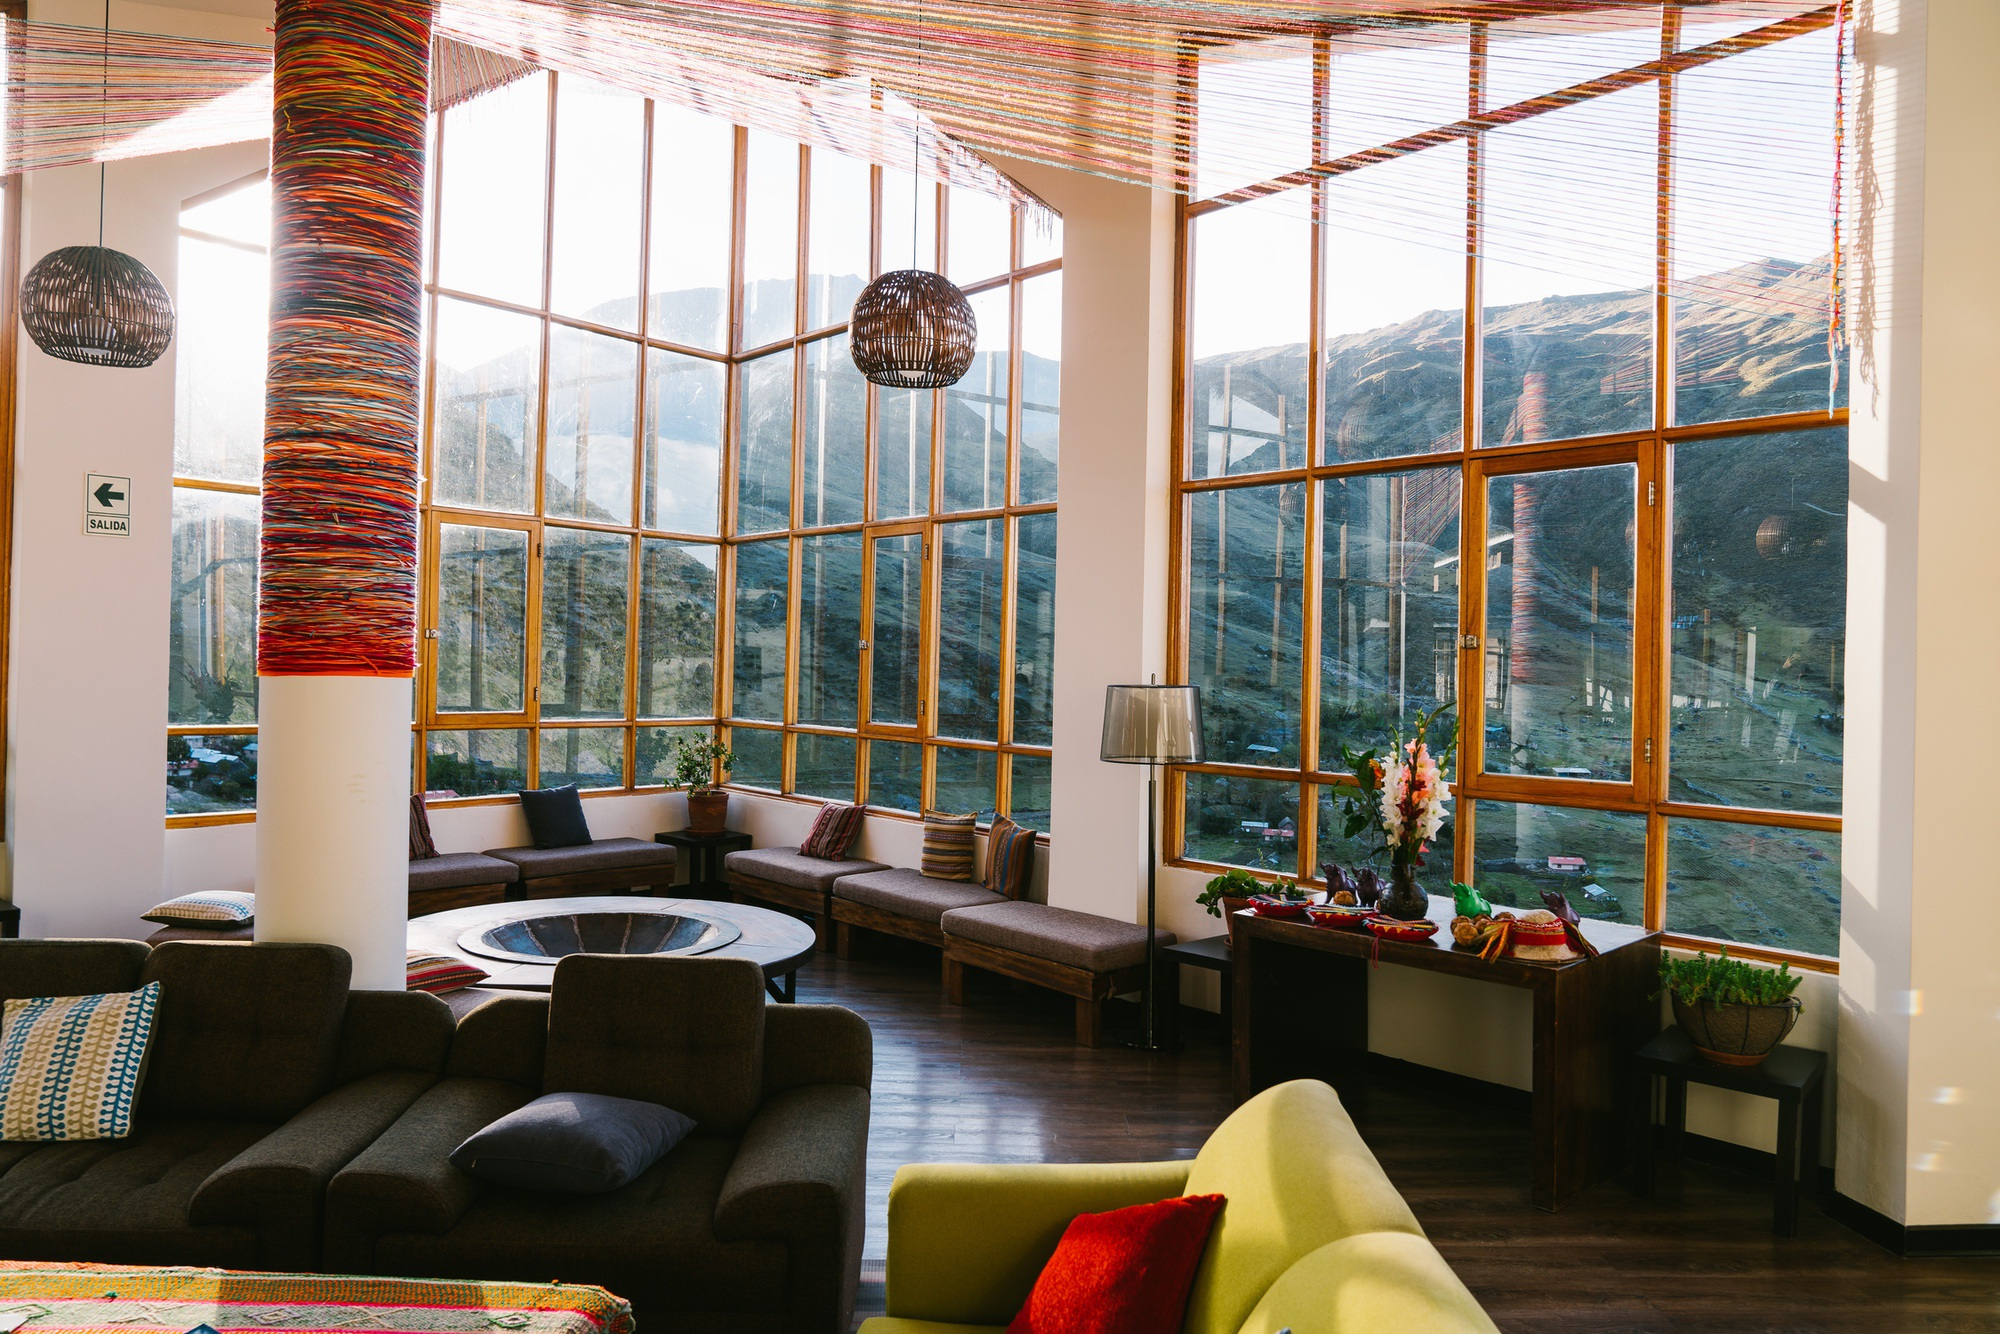 Interior of lodge in the sacred Valley